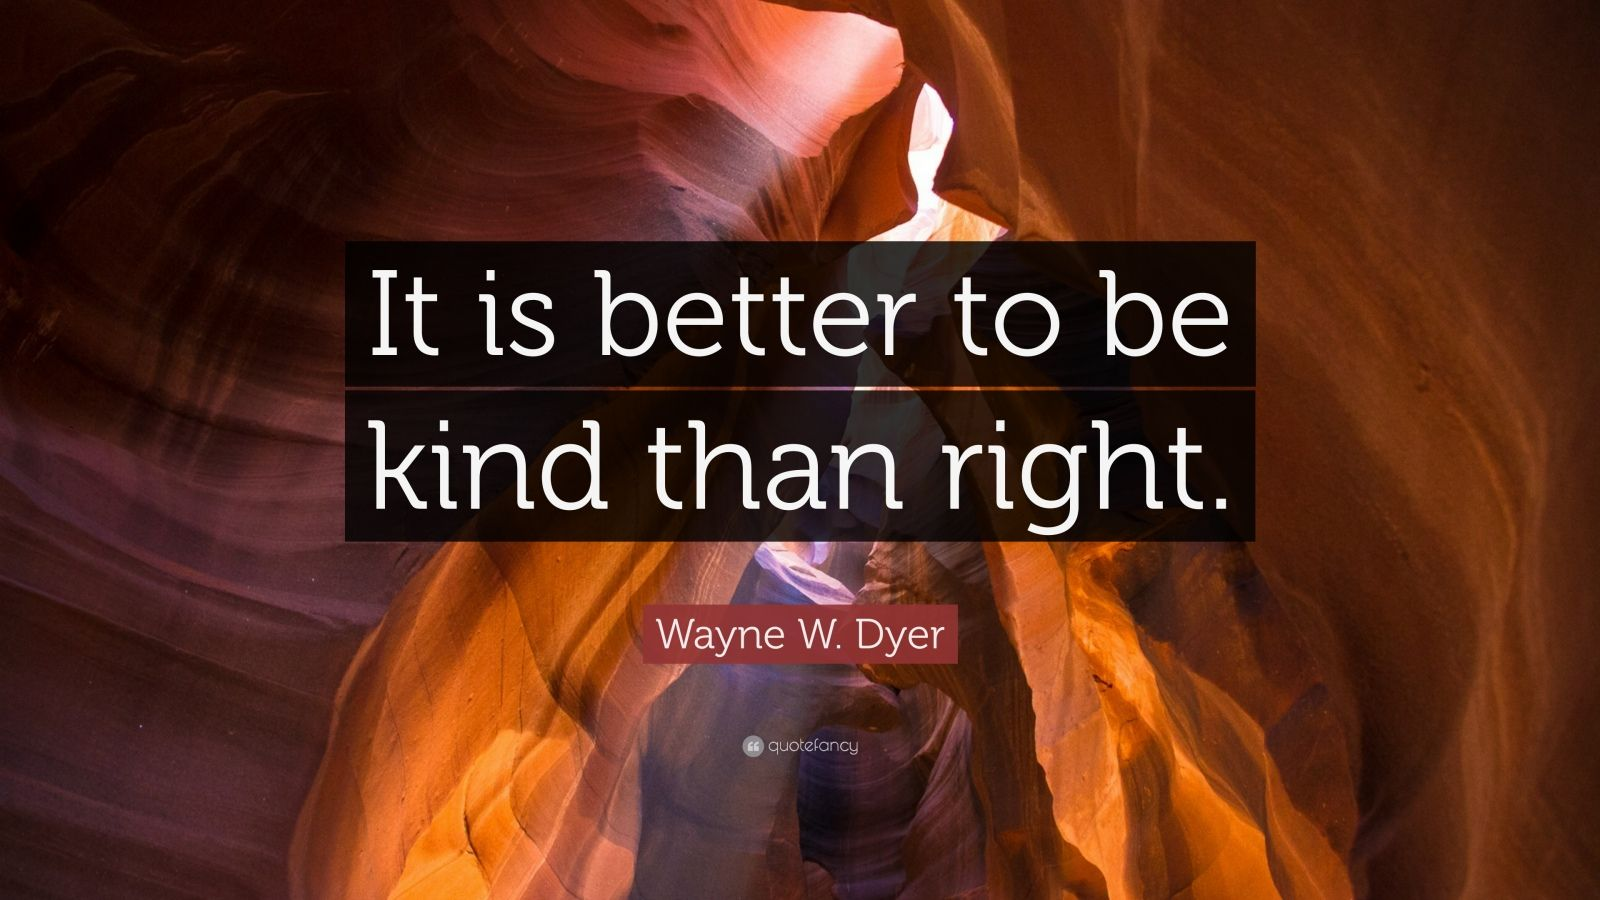 """Wayne W. Dyer Quote: """"It is better to be kind than right."""""""